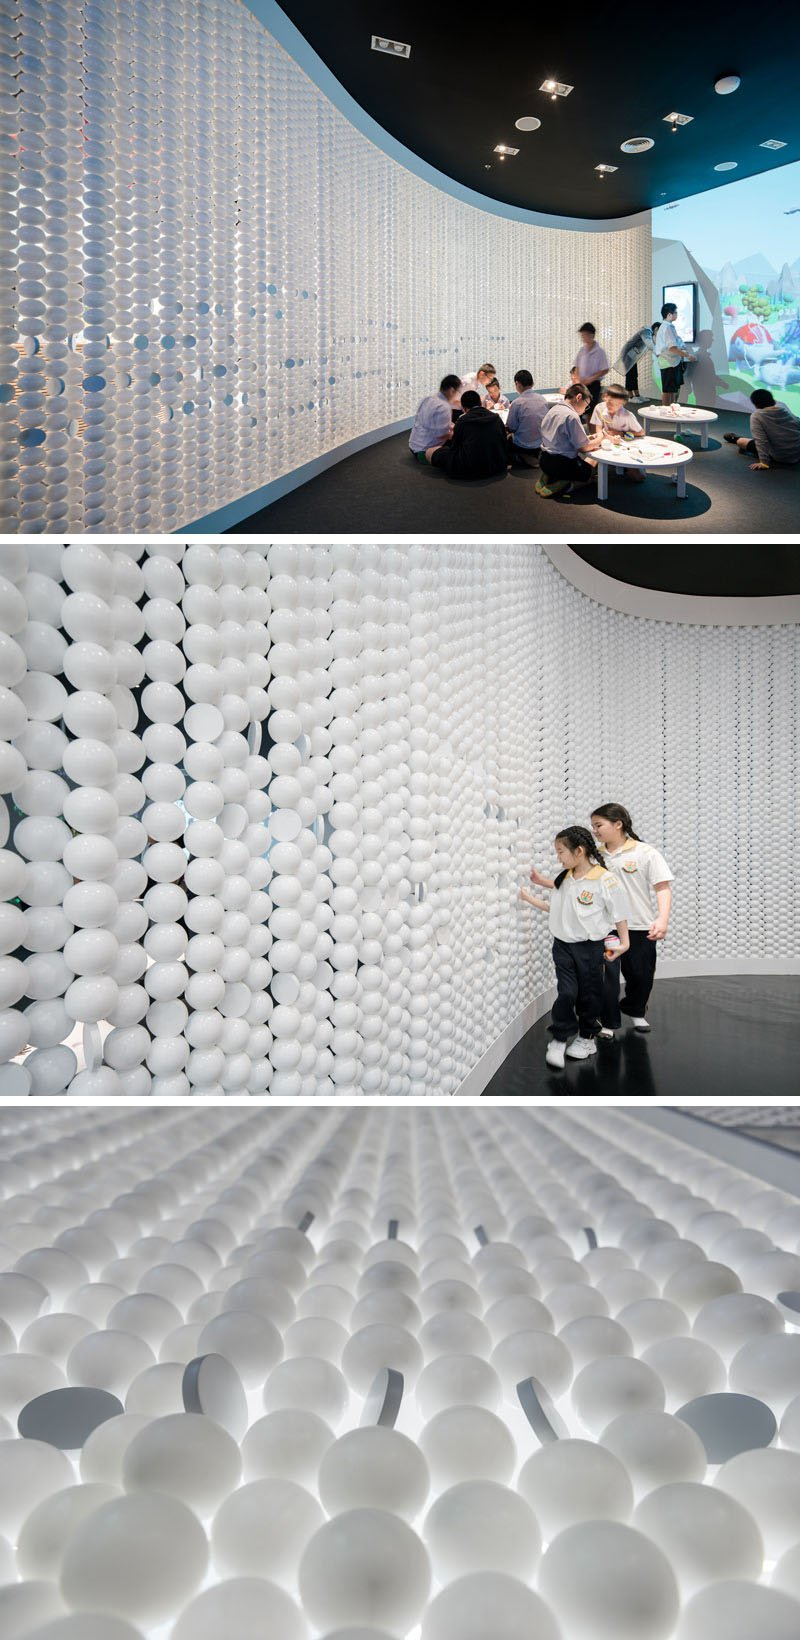 Suspended Strings of Balls for the Walls of Playground in Bangkok, Thailand